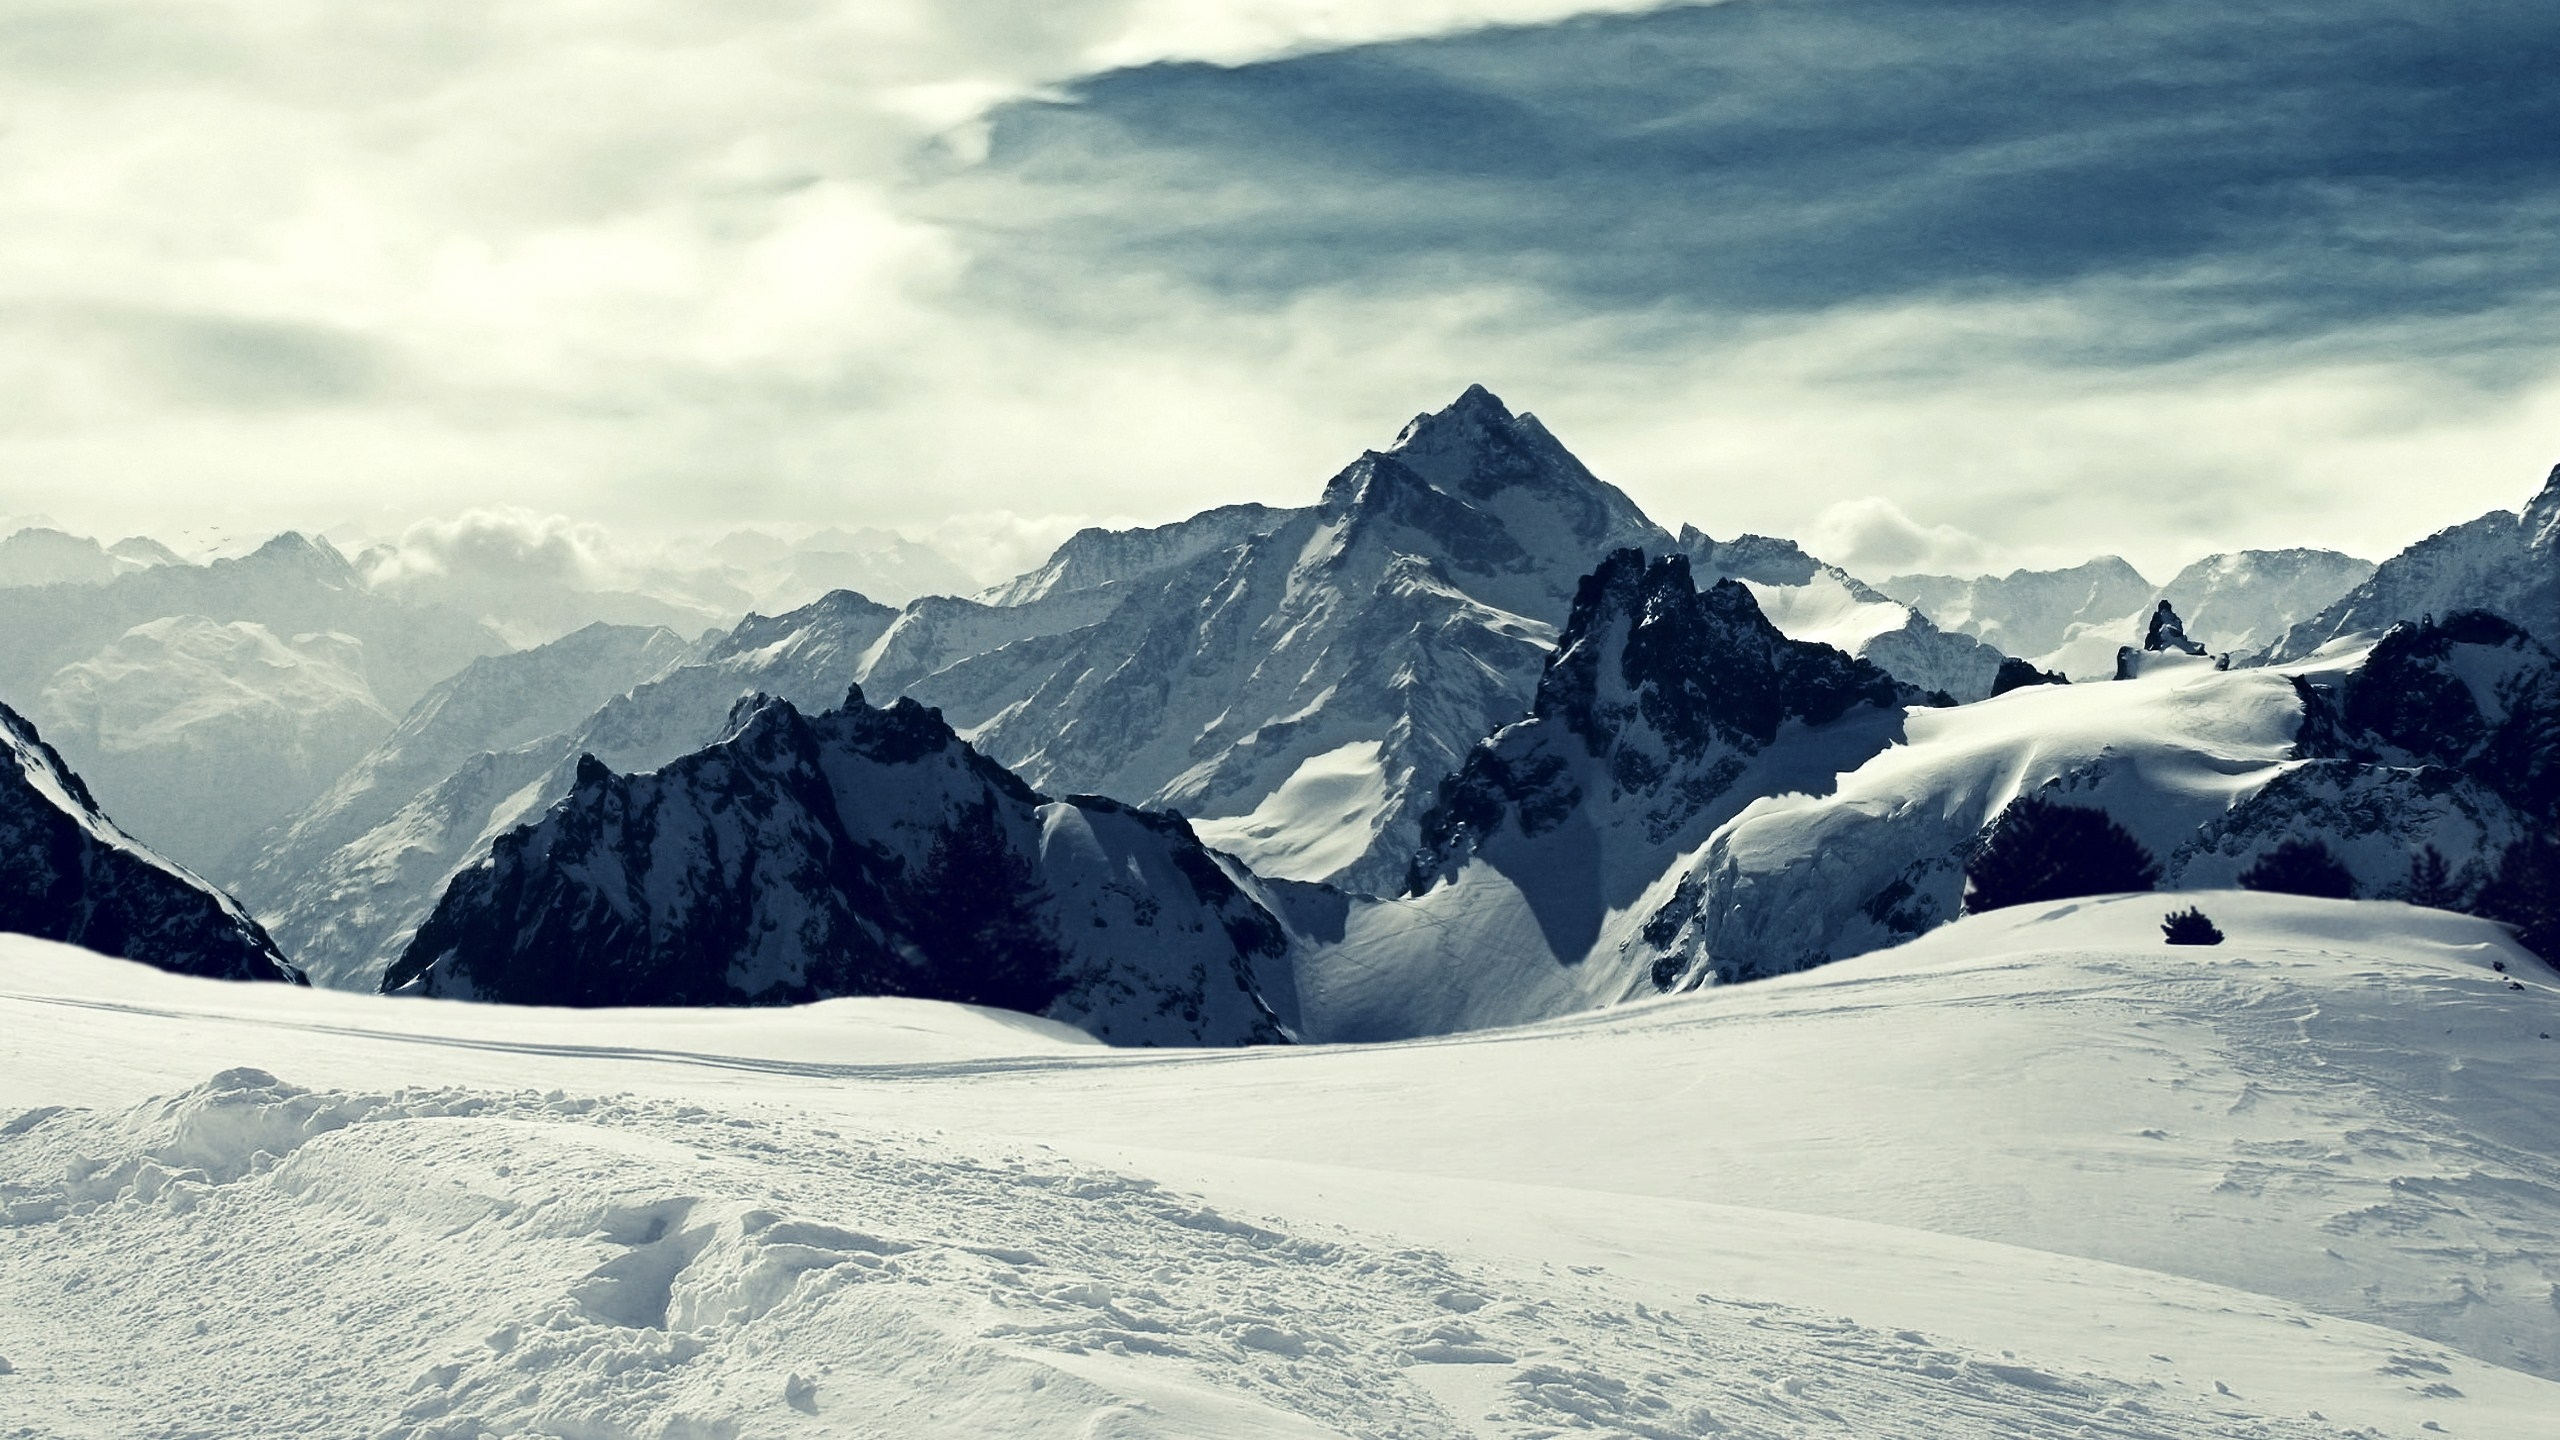 wallpaper's collection: «snowy mountains wallpapers»